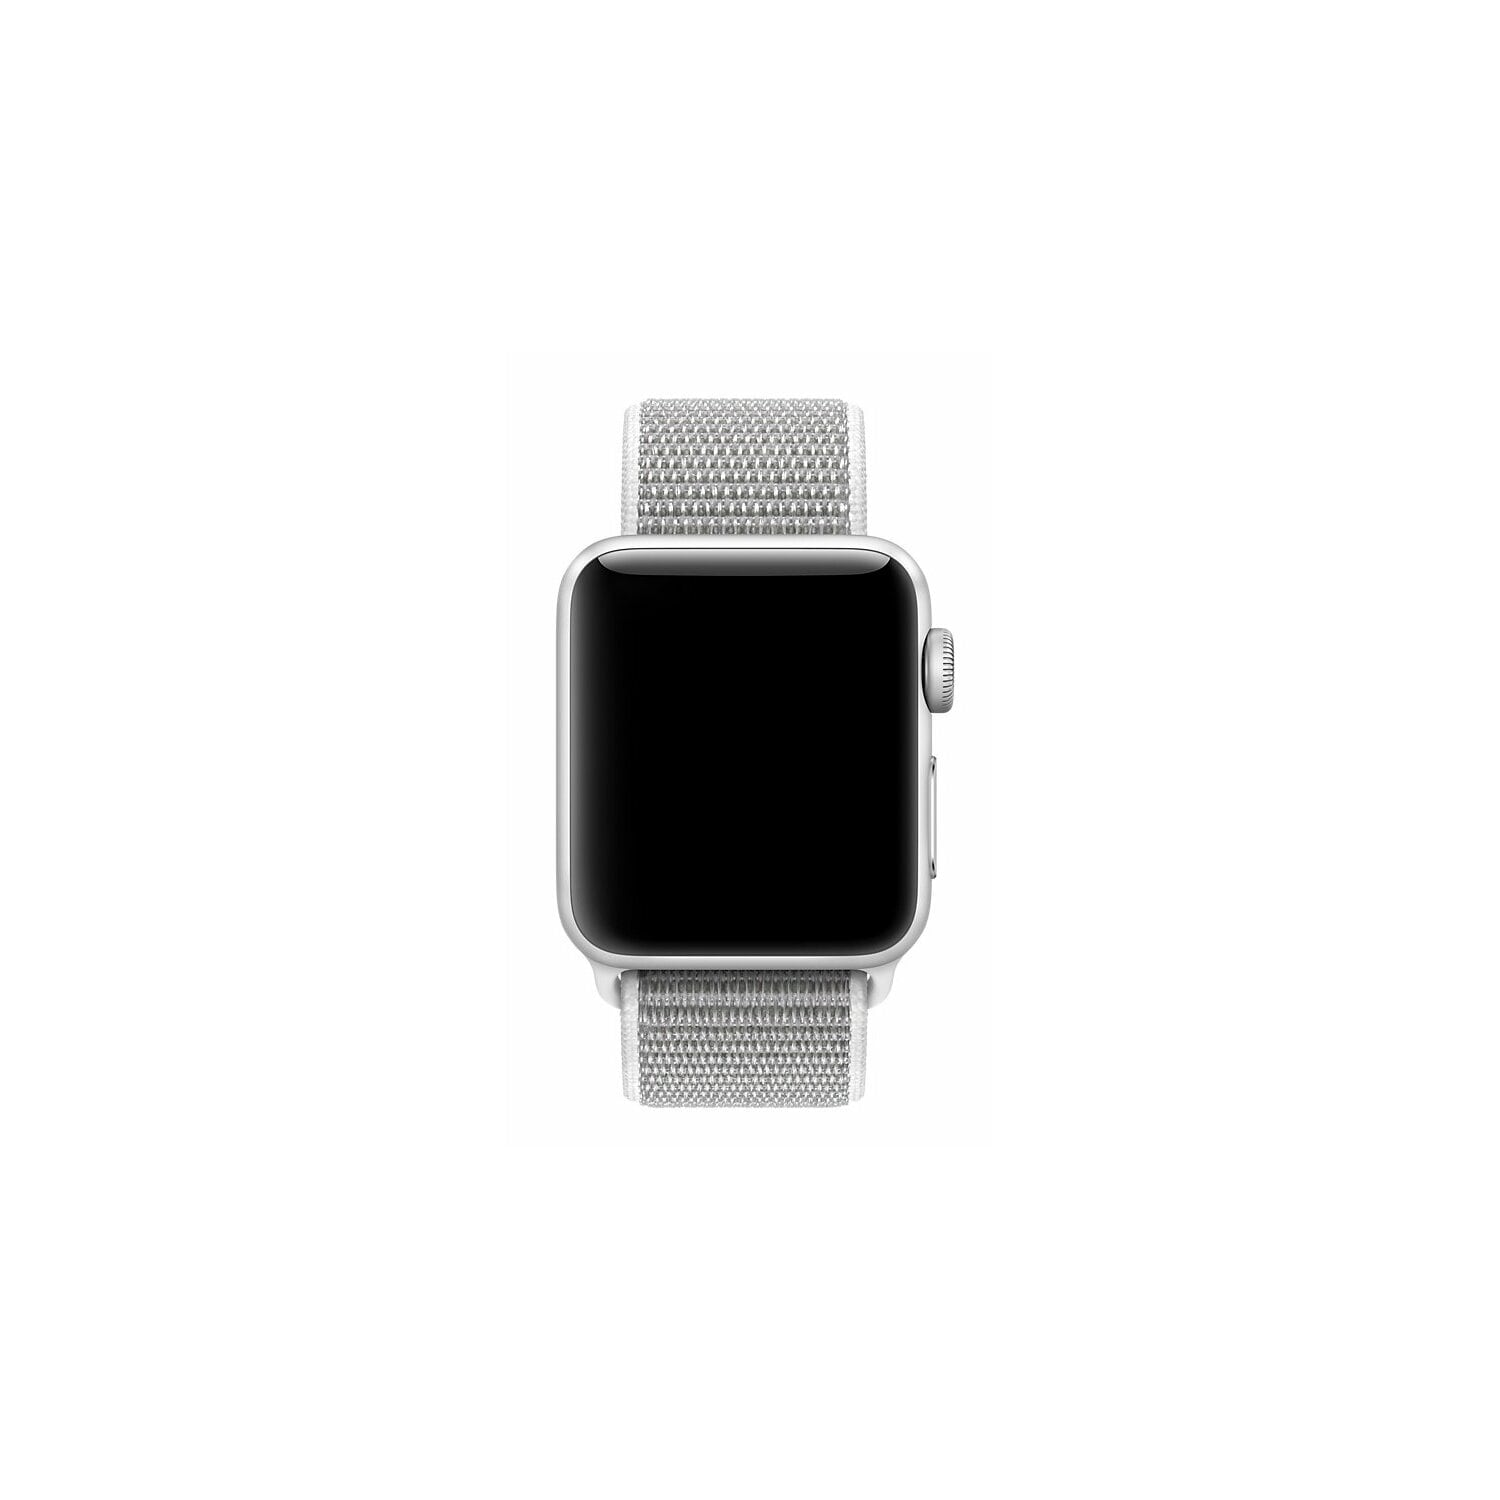 Opaska sportowa do smartwatcha APPLE Watch w kolorze porcelanowym do koperty 38 mm MQVY2ZM/A